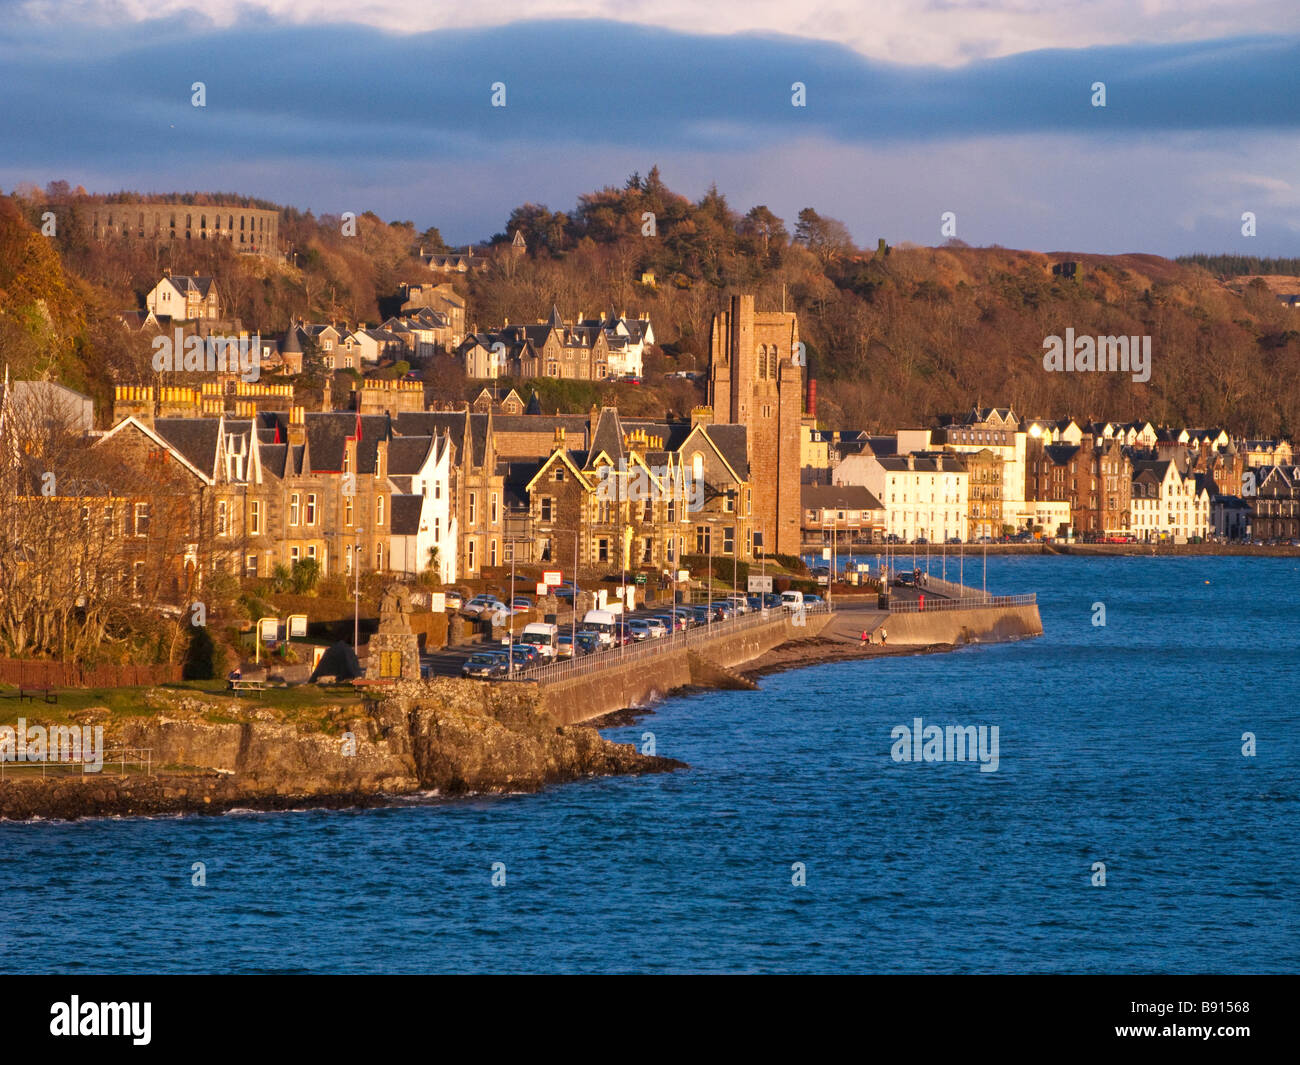 Oban seen from the car ferry - Stock Image